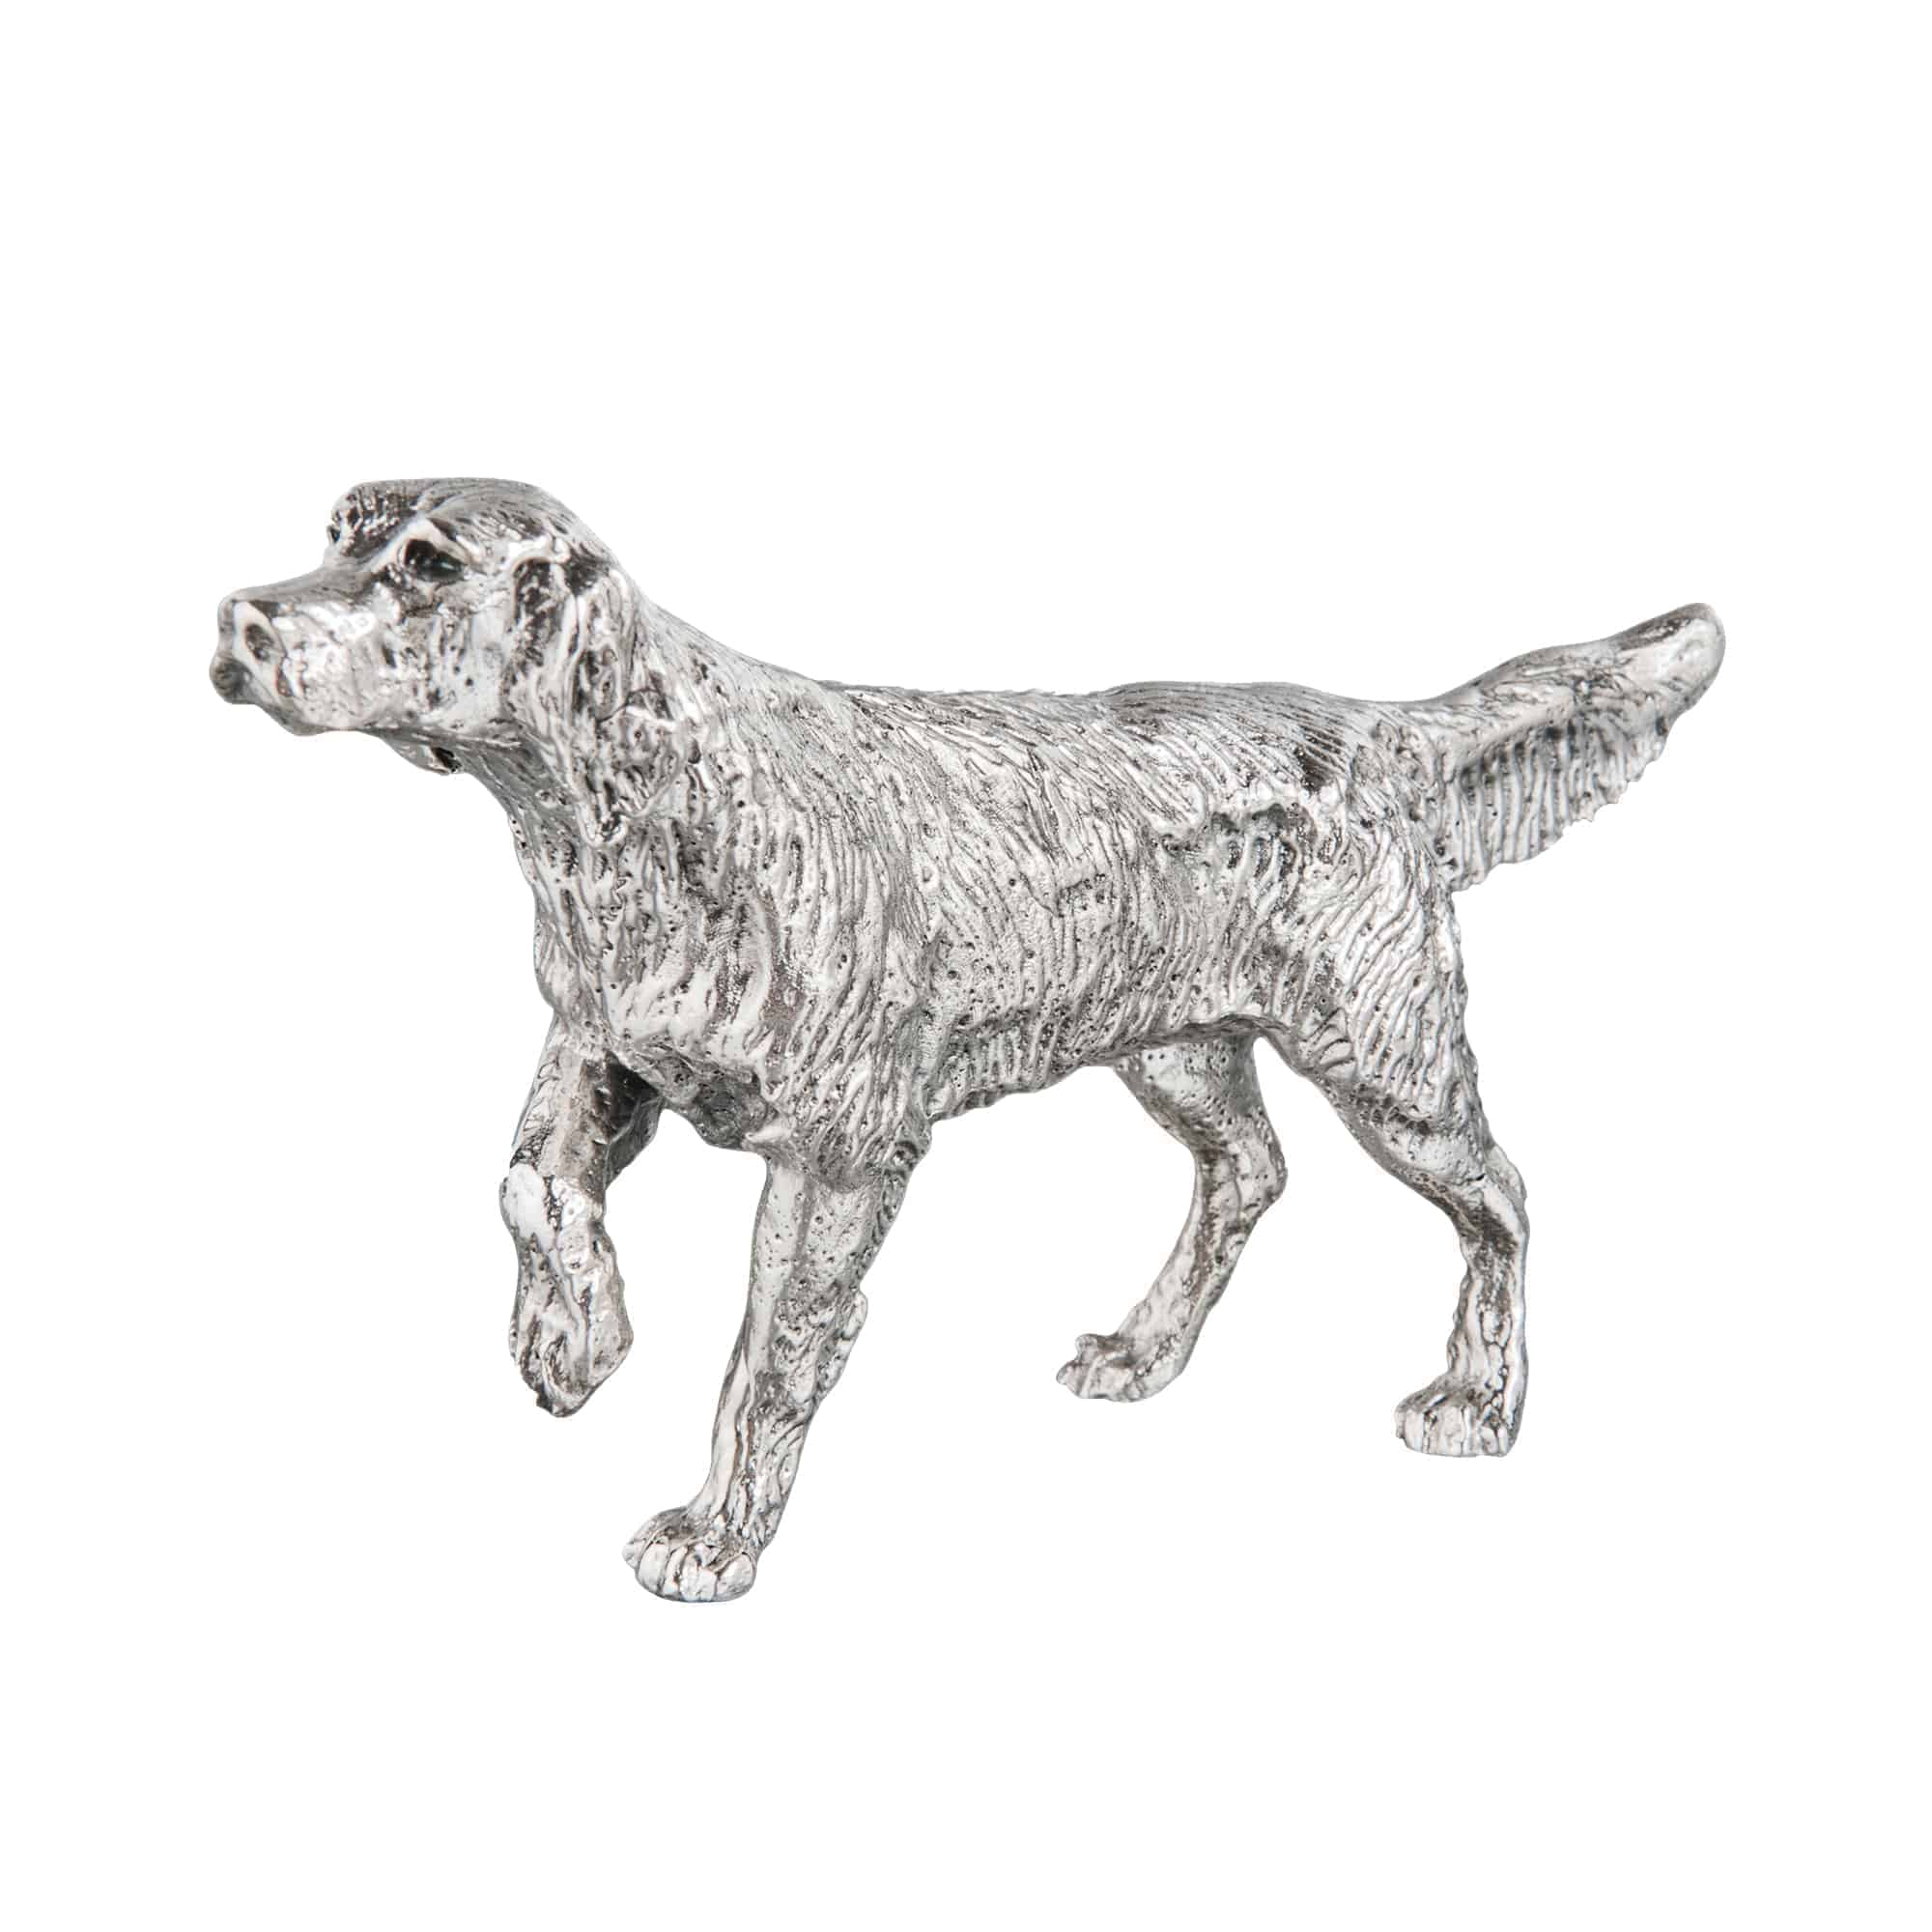 Chien Setter bestiaire odiot